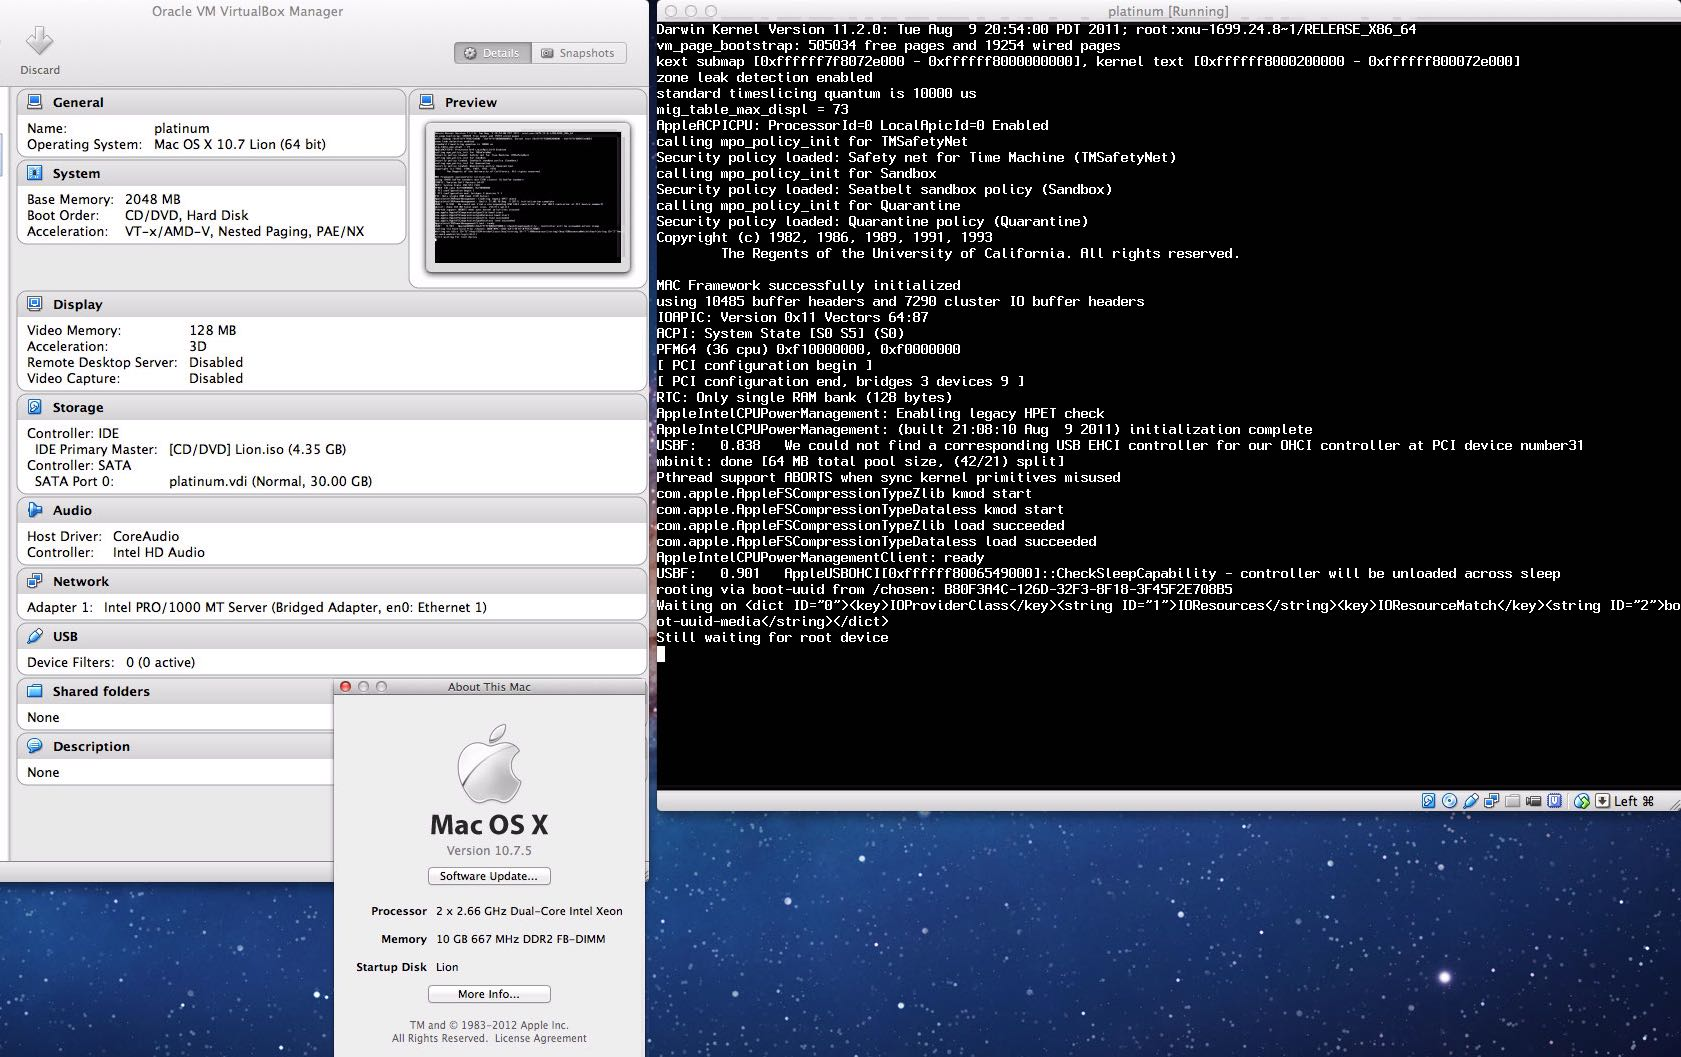 OSX Mountain Lion (Still Waiting For Root Device) - YouTube